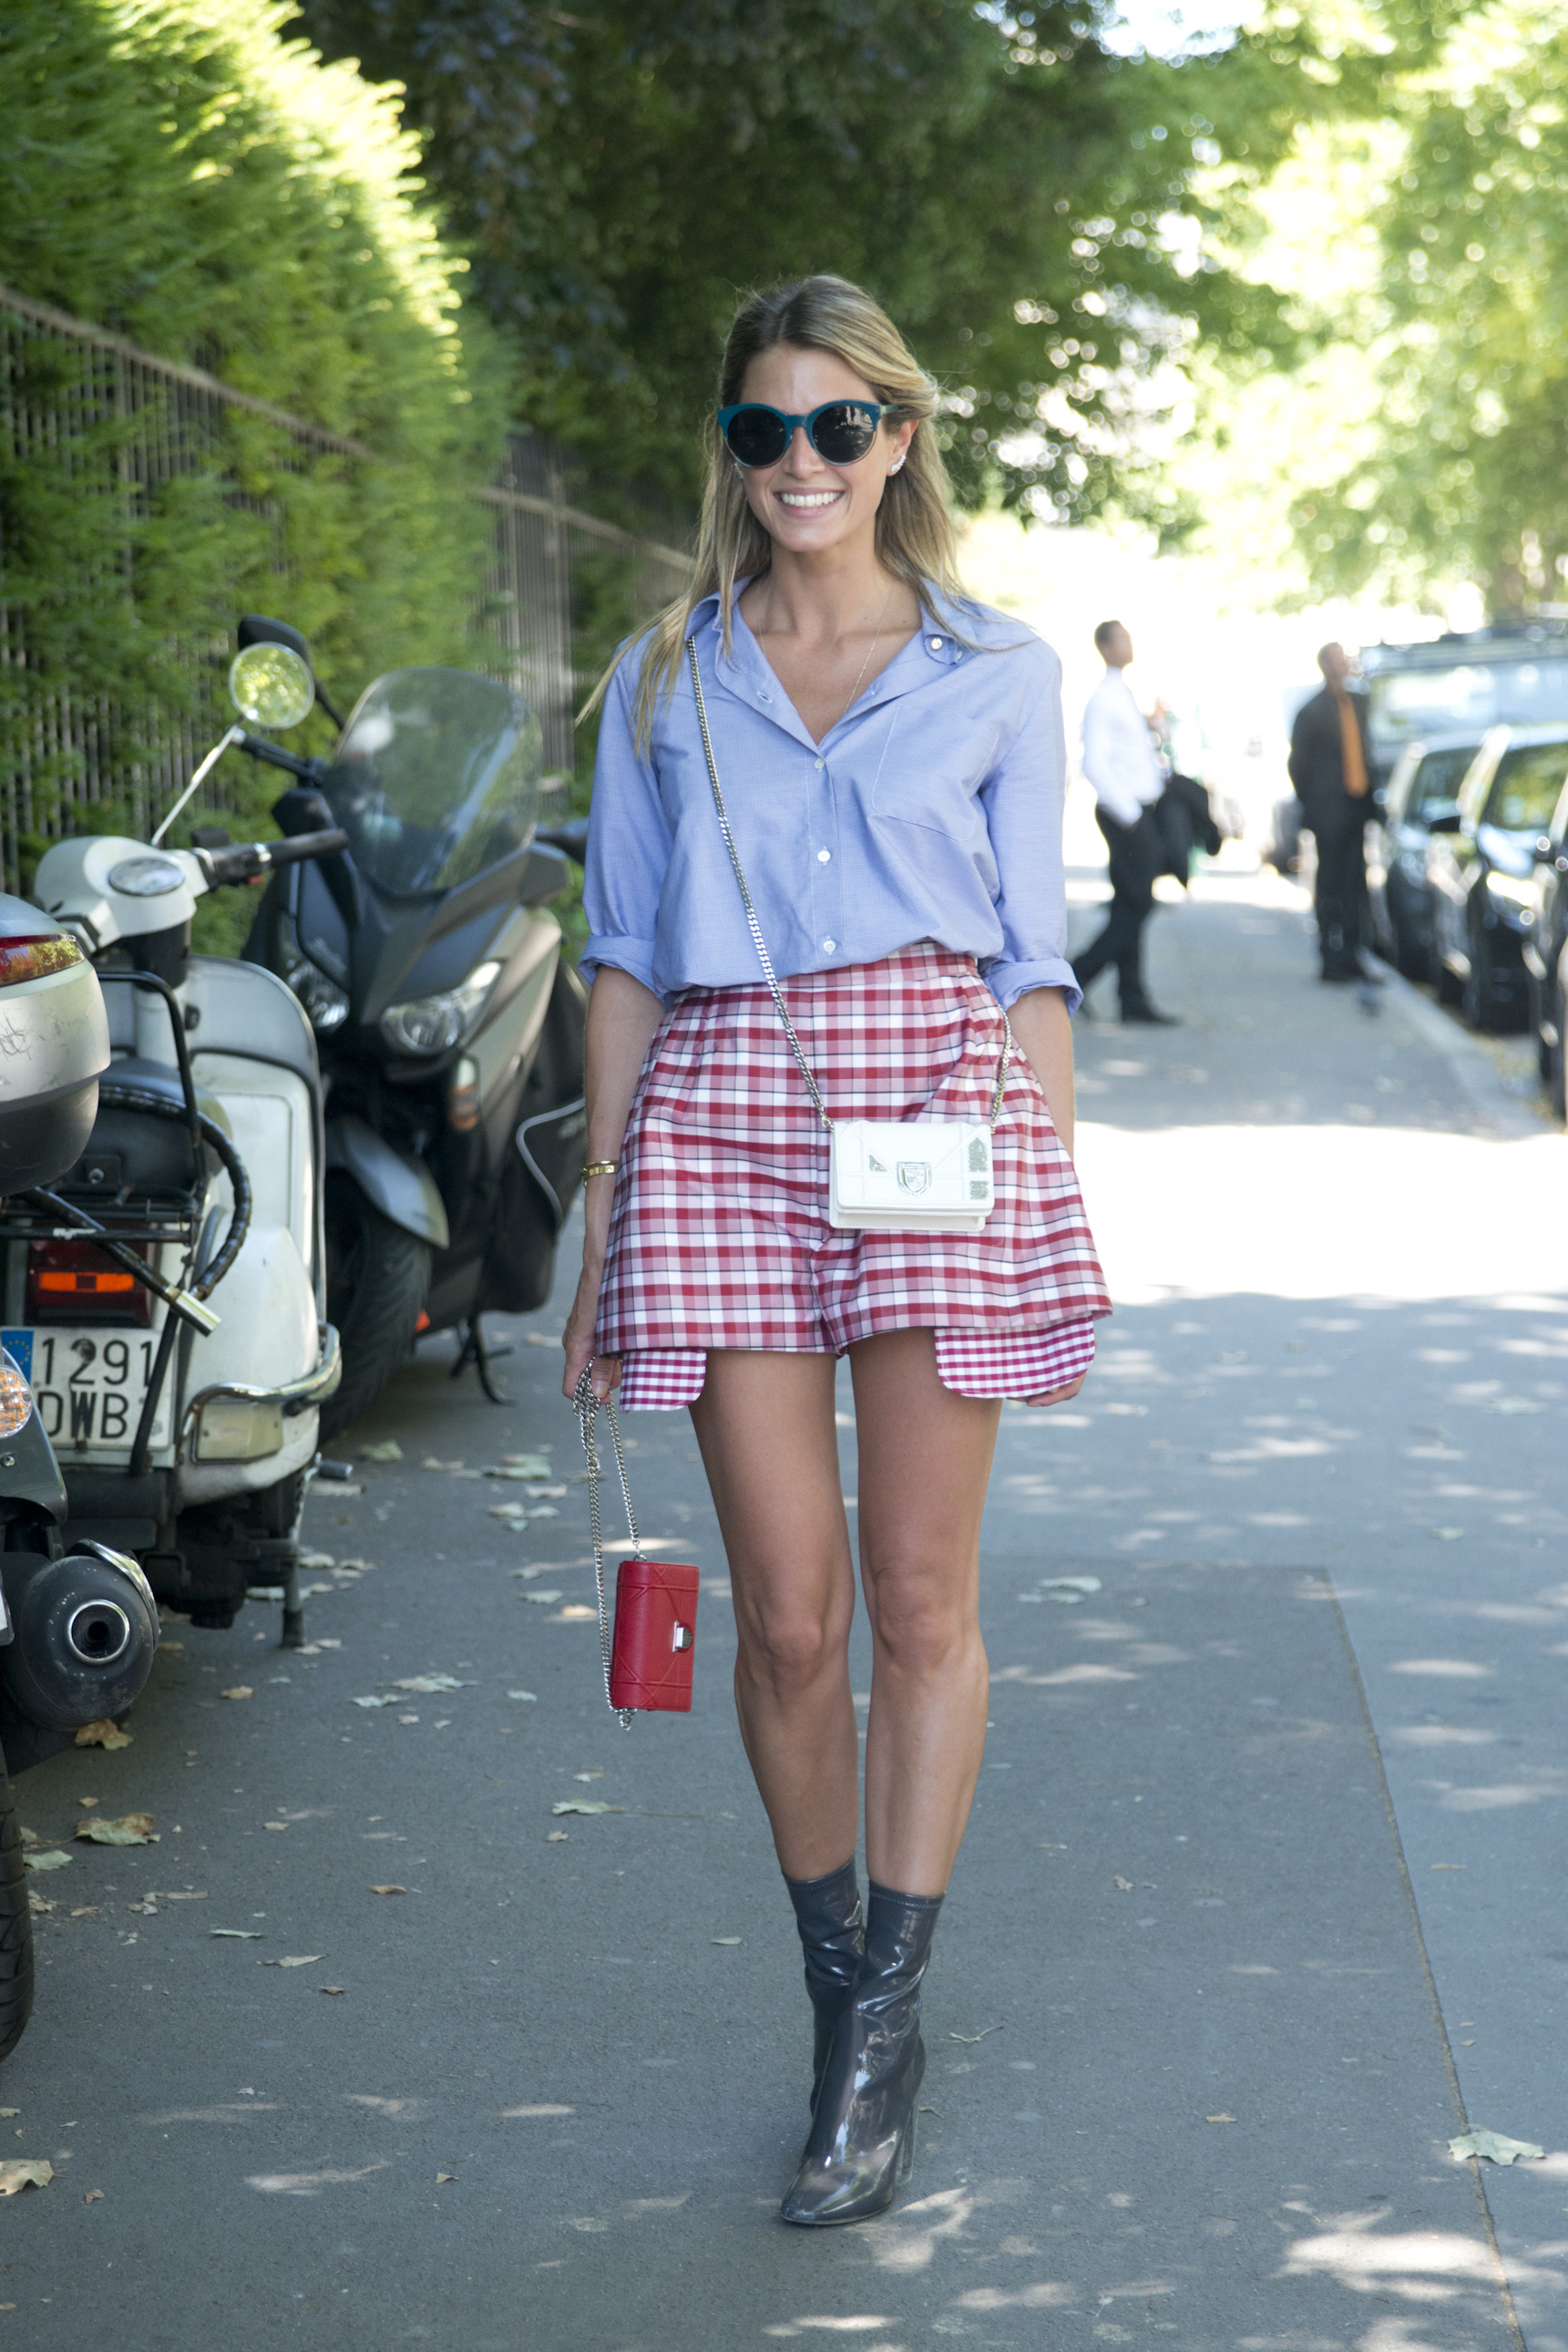 <p>Want some print in your wardrobe this Spring but not a fanof the bold florals on offer? Take inspiratrion from these street stylers whoprove that checks, plaids and tartans in every shape and form make for an idealseasonal alternative.</p>